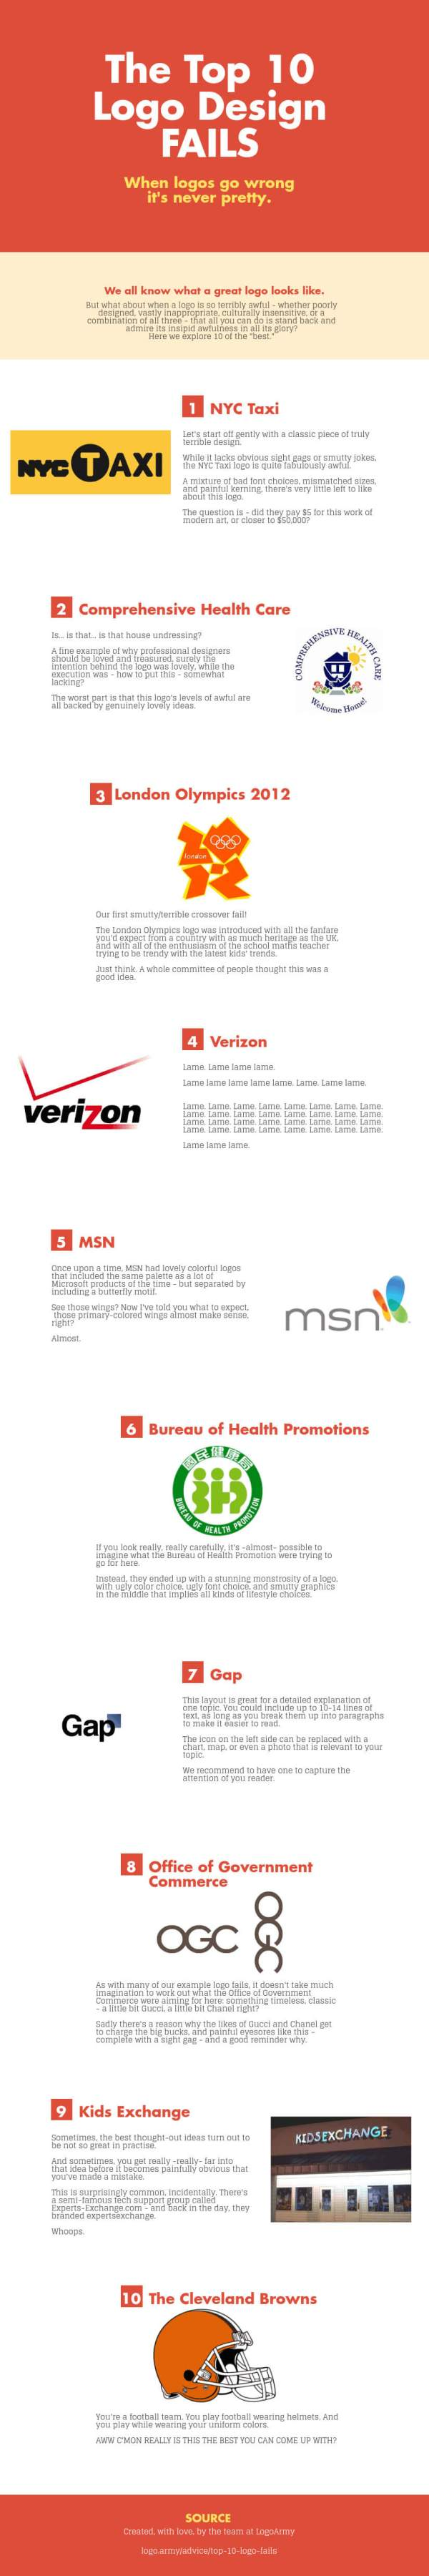 top-10-logo-fails-infographic